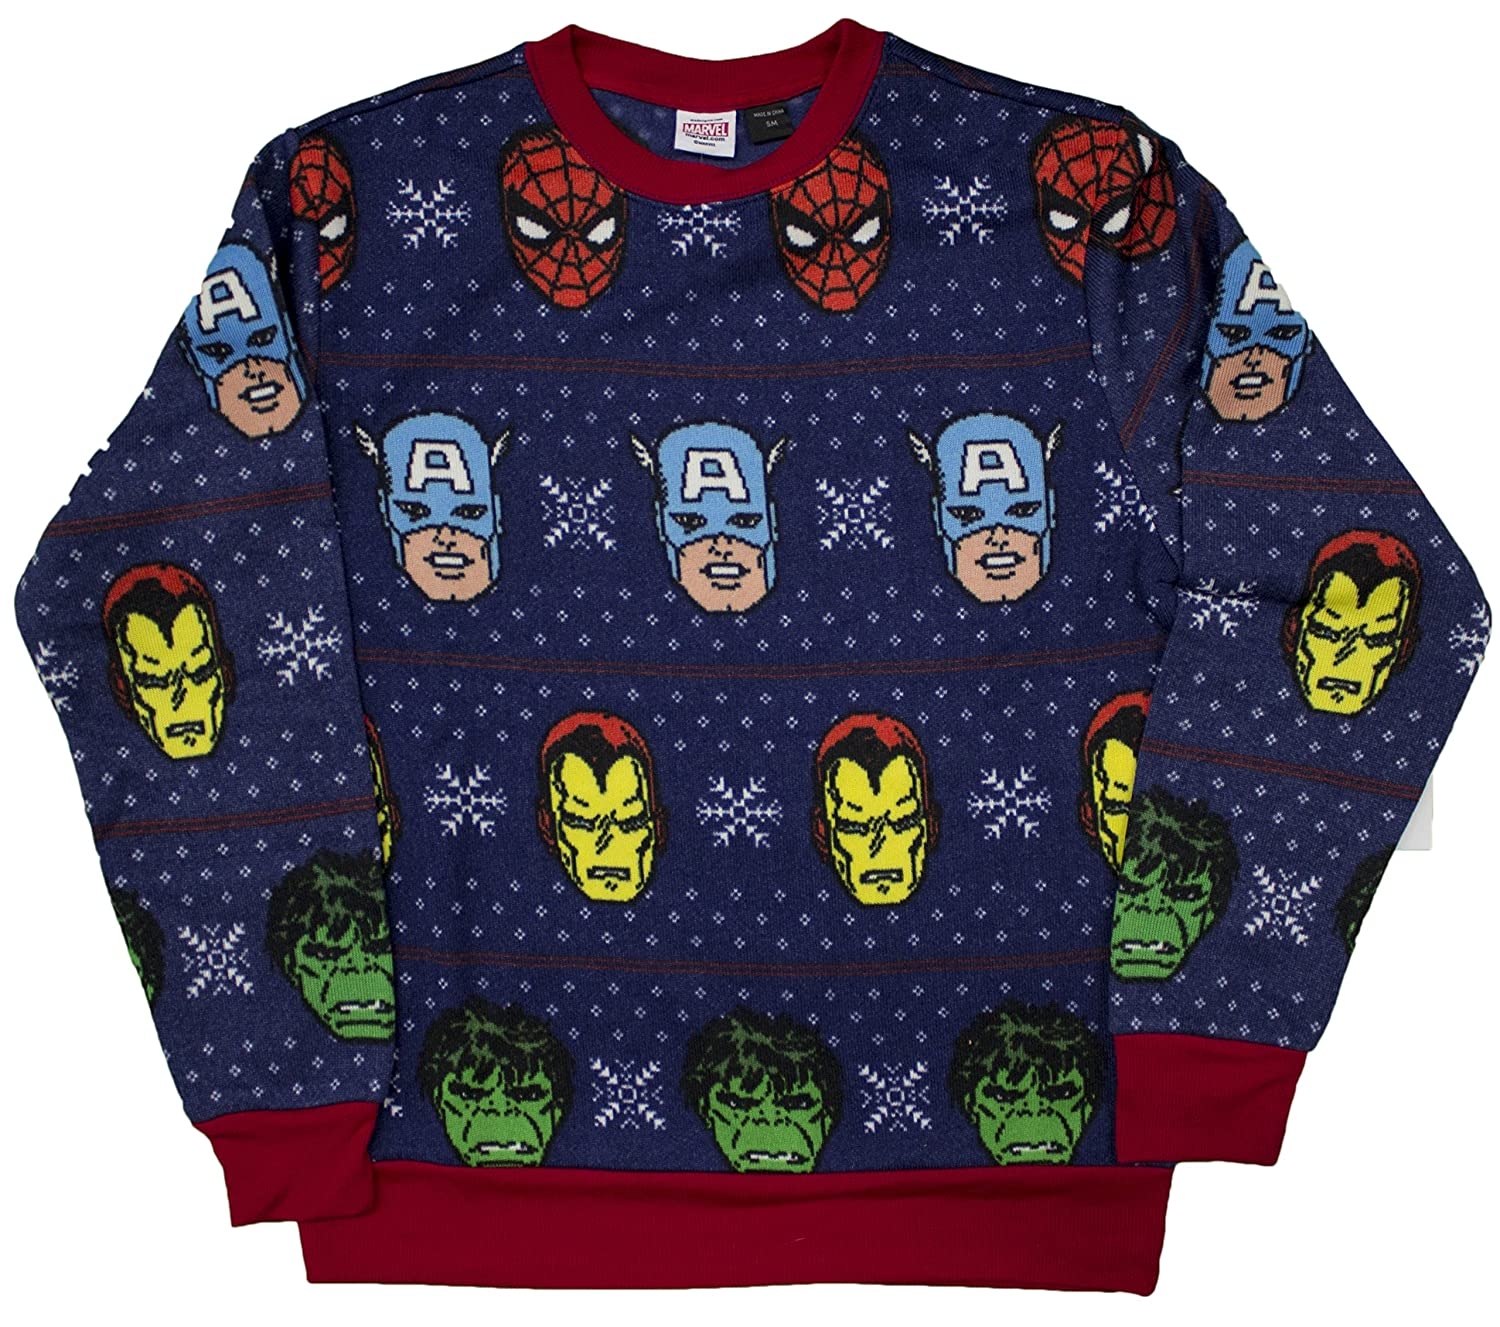 Marvel Avengers Ugly Christmas Sweater